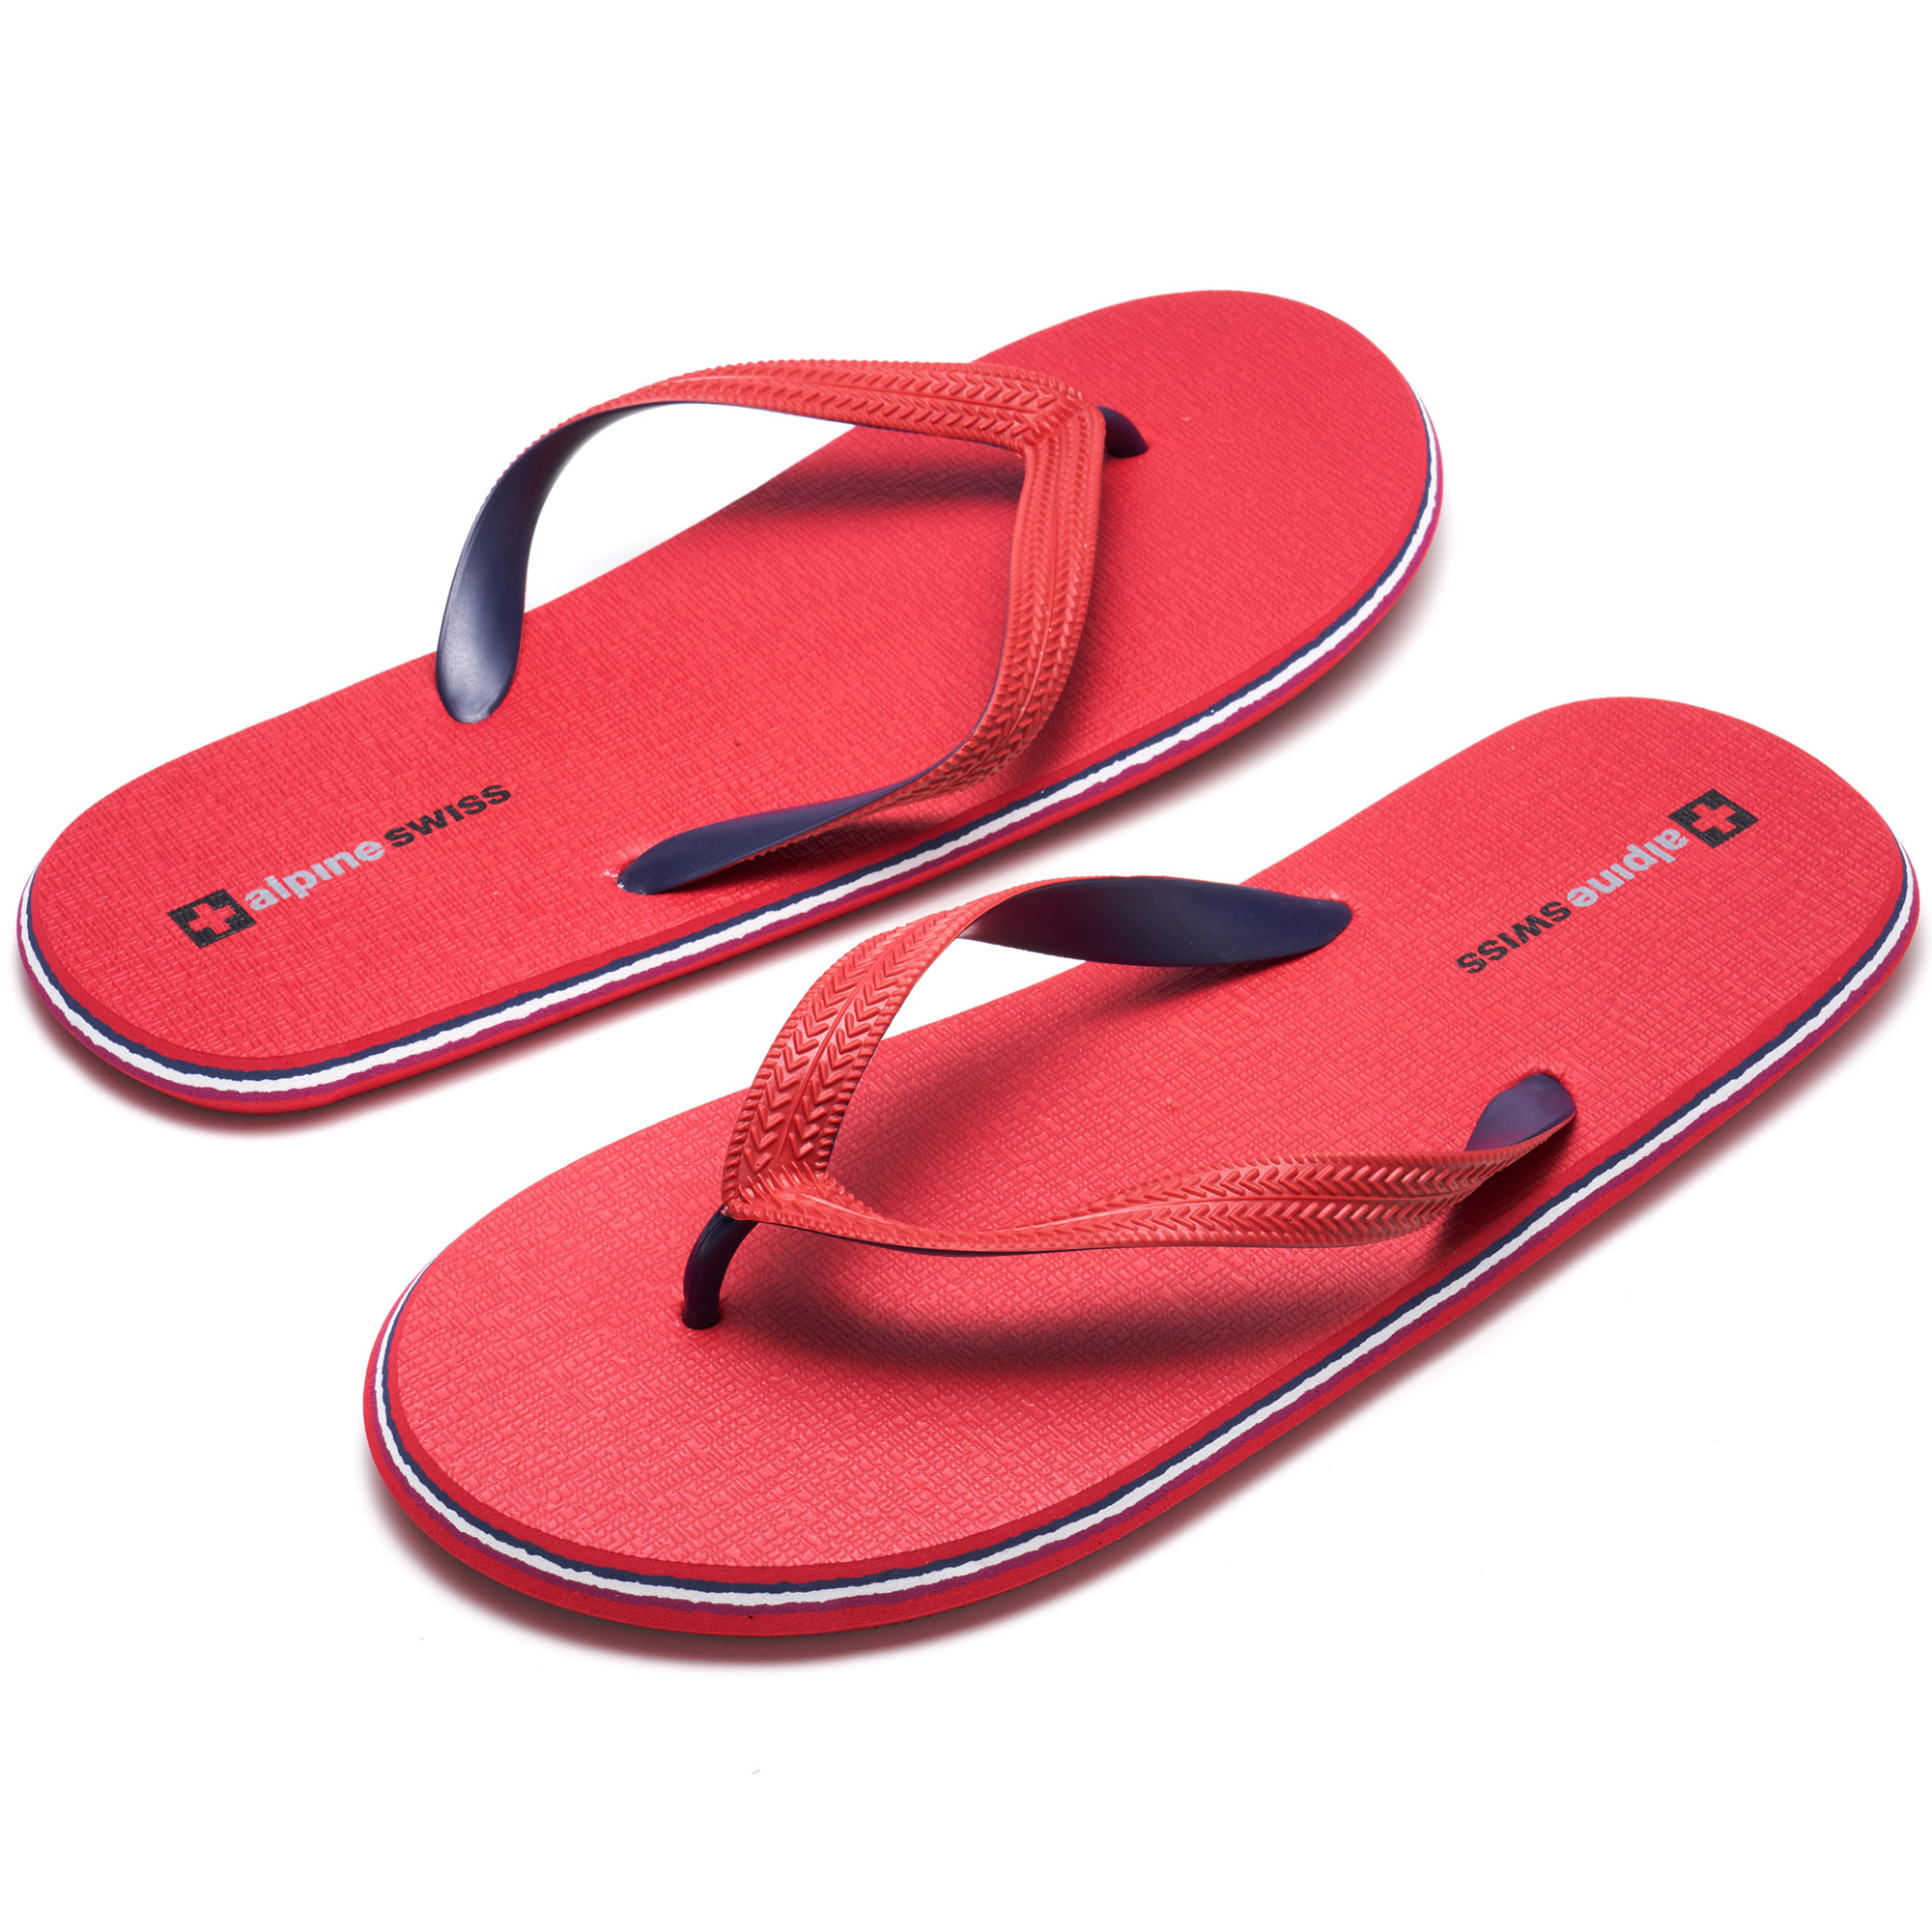 Alpine-Swiss-Mens-Flip-Flops-Beach-Sandals-Lightweight-EVA-Sole-Comfort-Thongs thumbnail 35